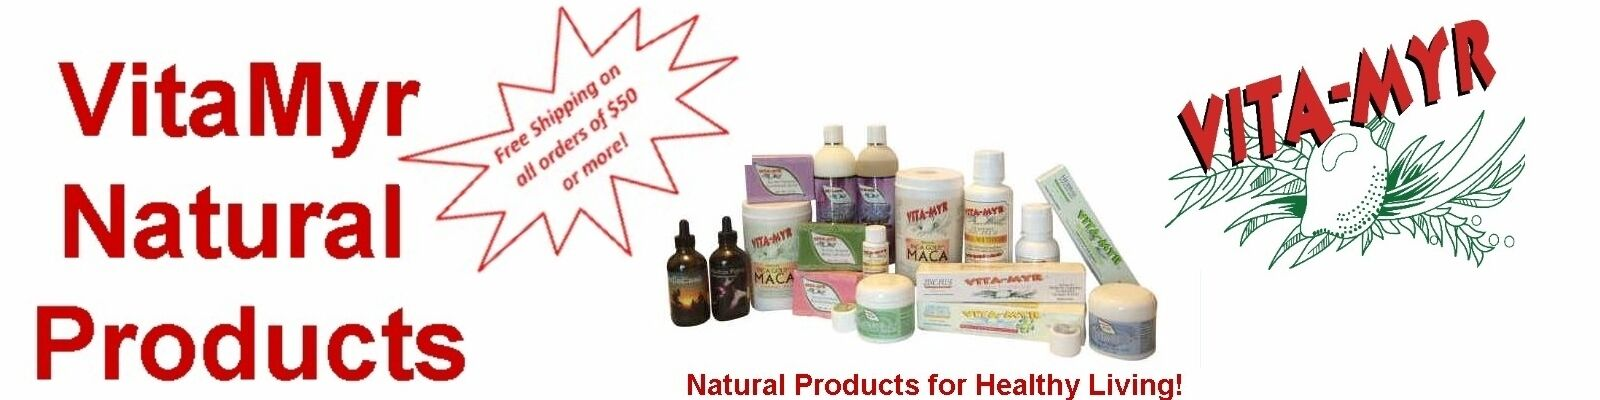 Vitamyr Natural Products